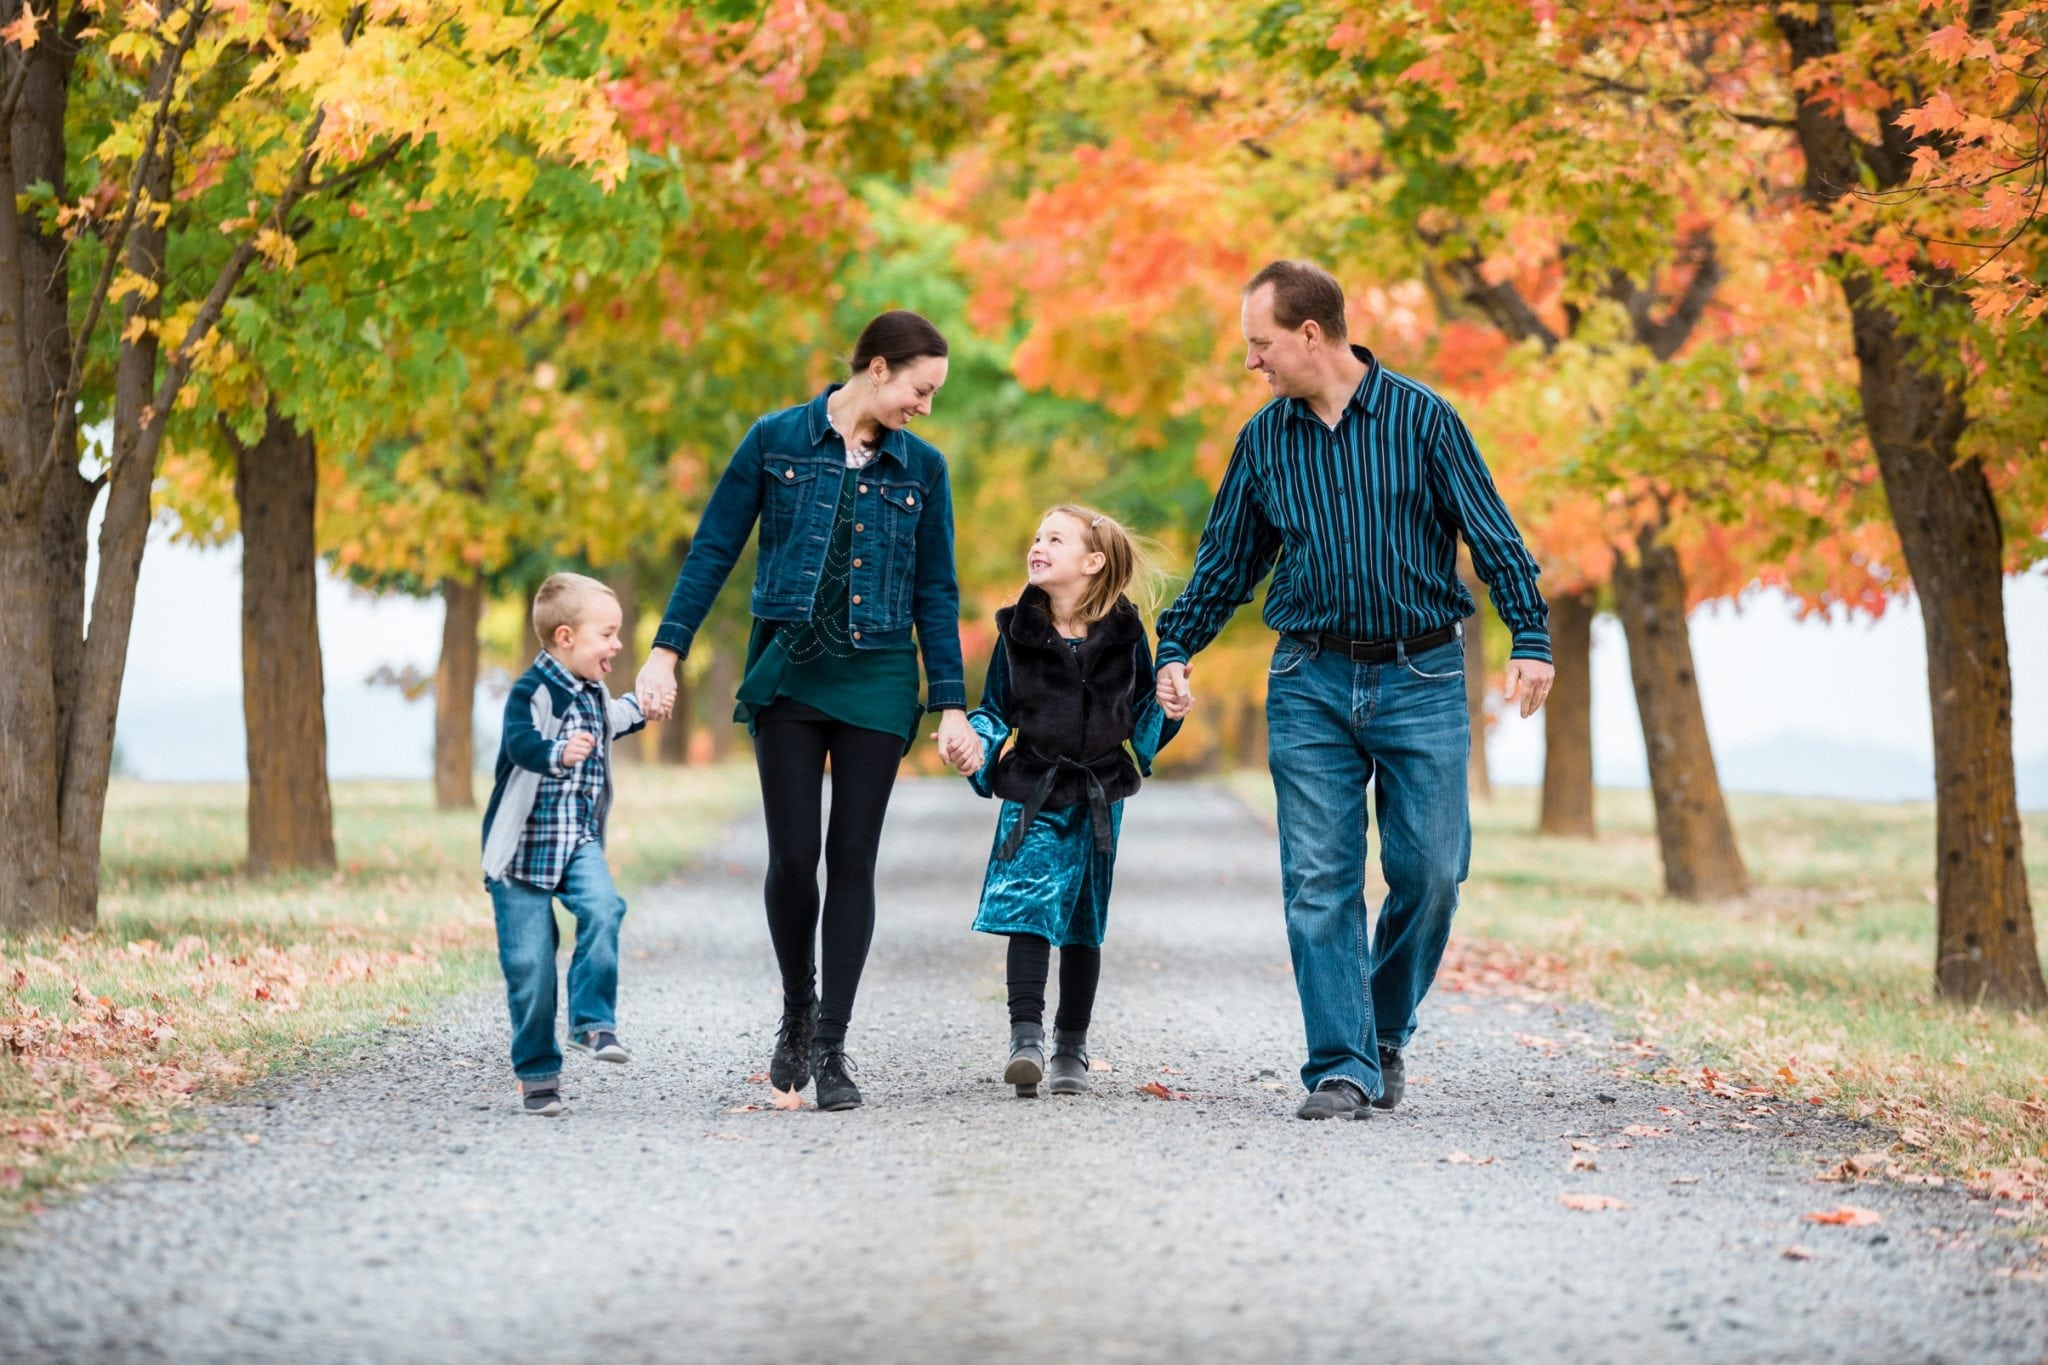 Fall family photo in Spokane WA taken by Franklin Photography